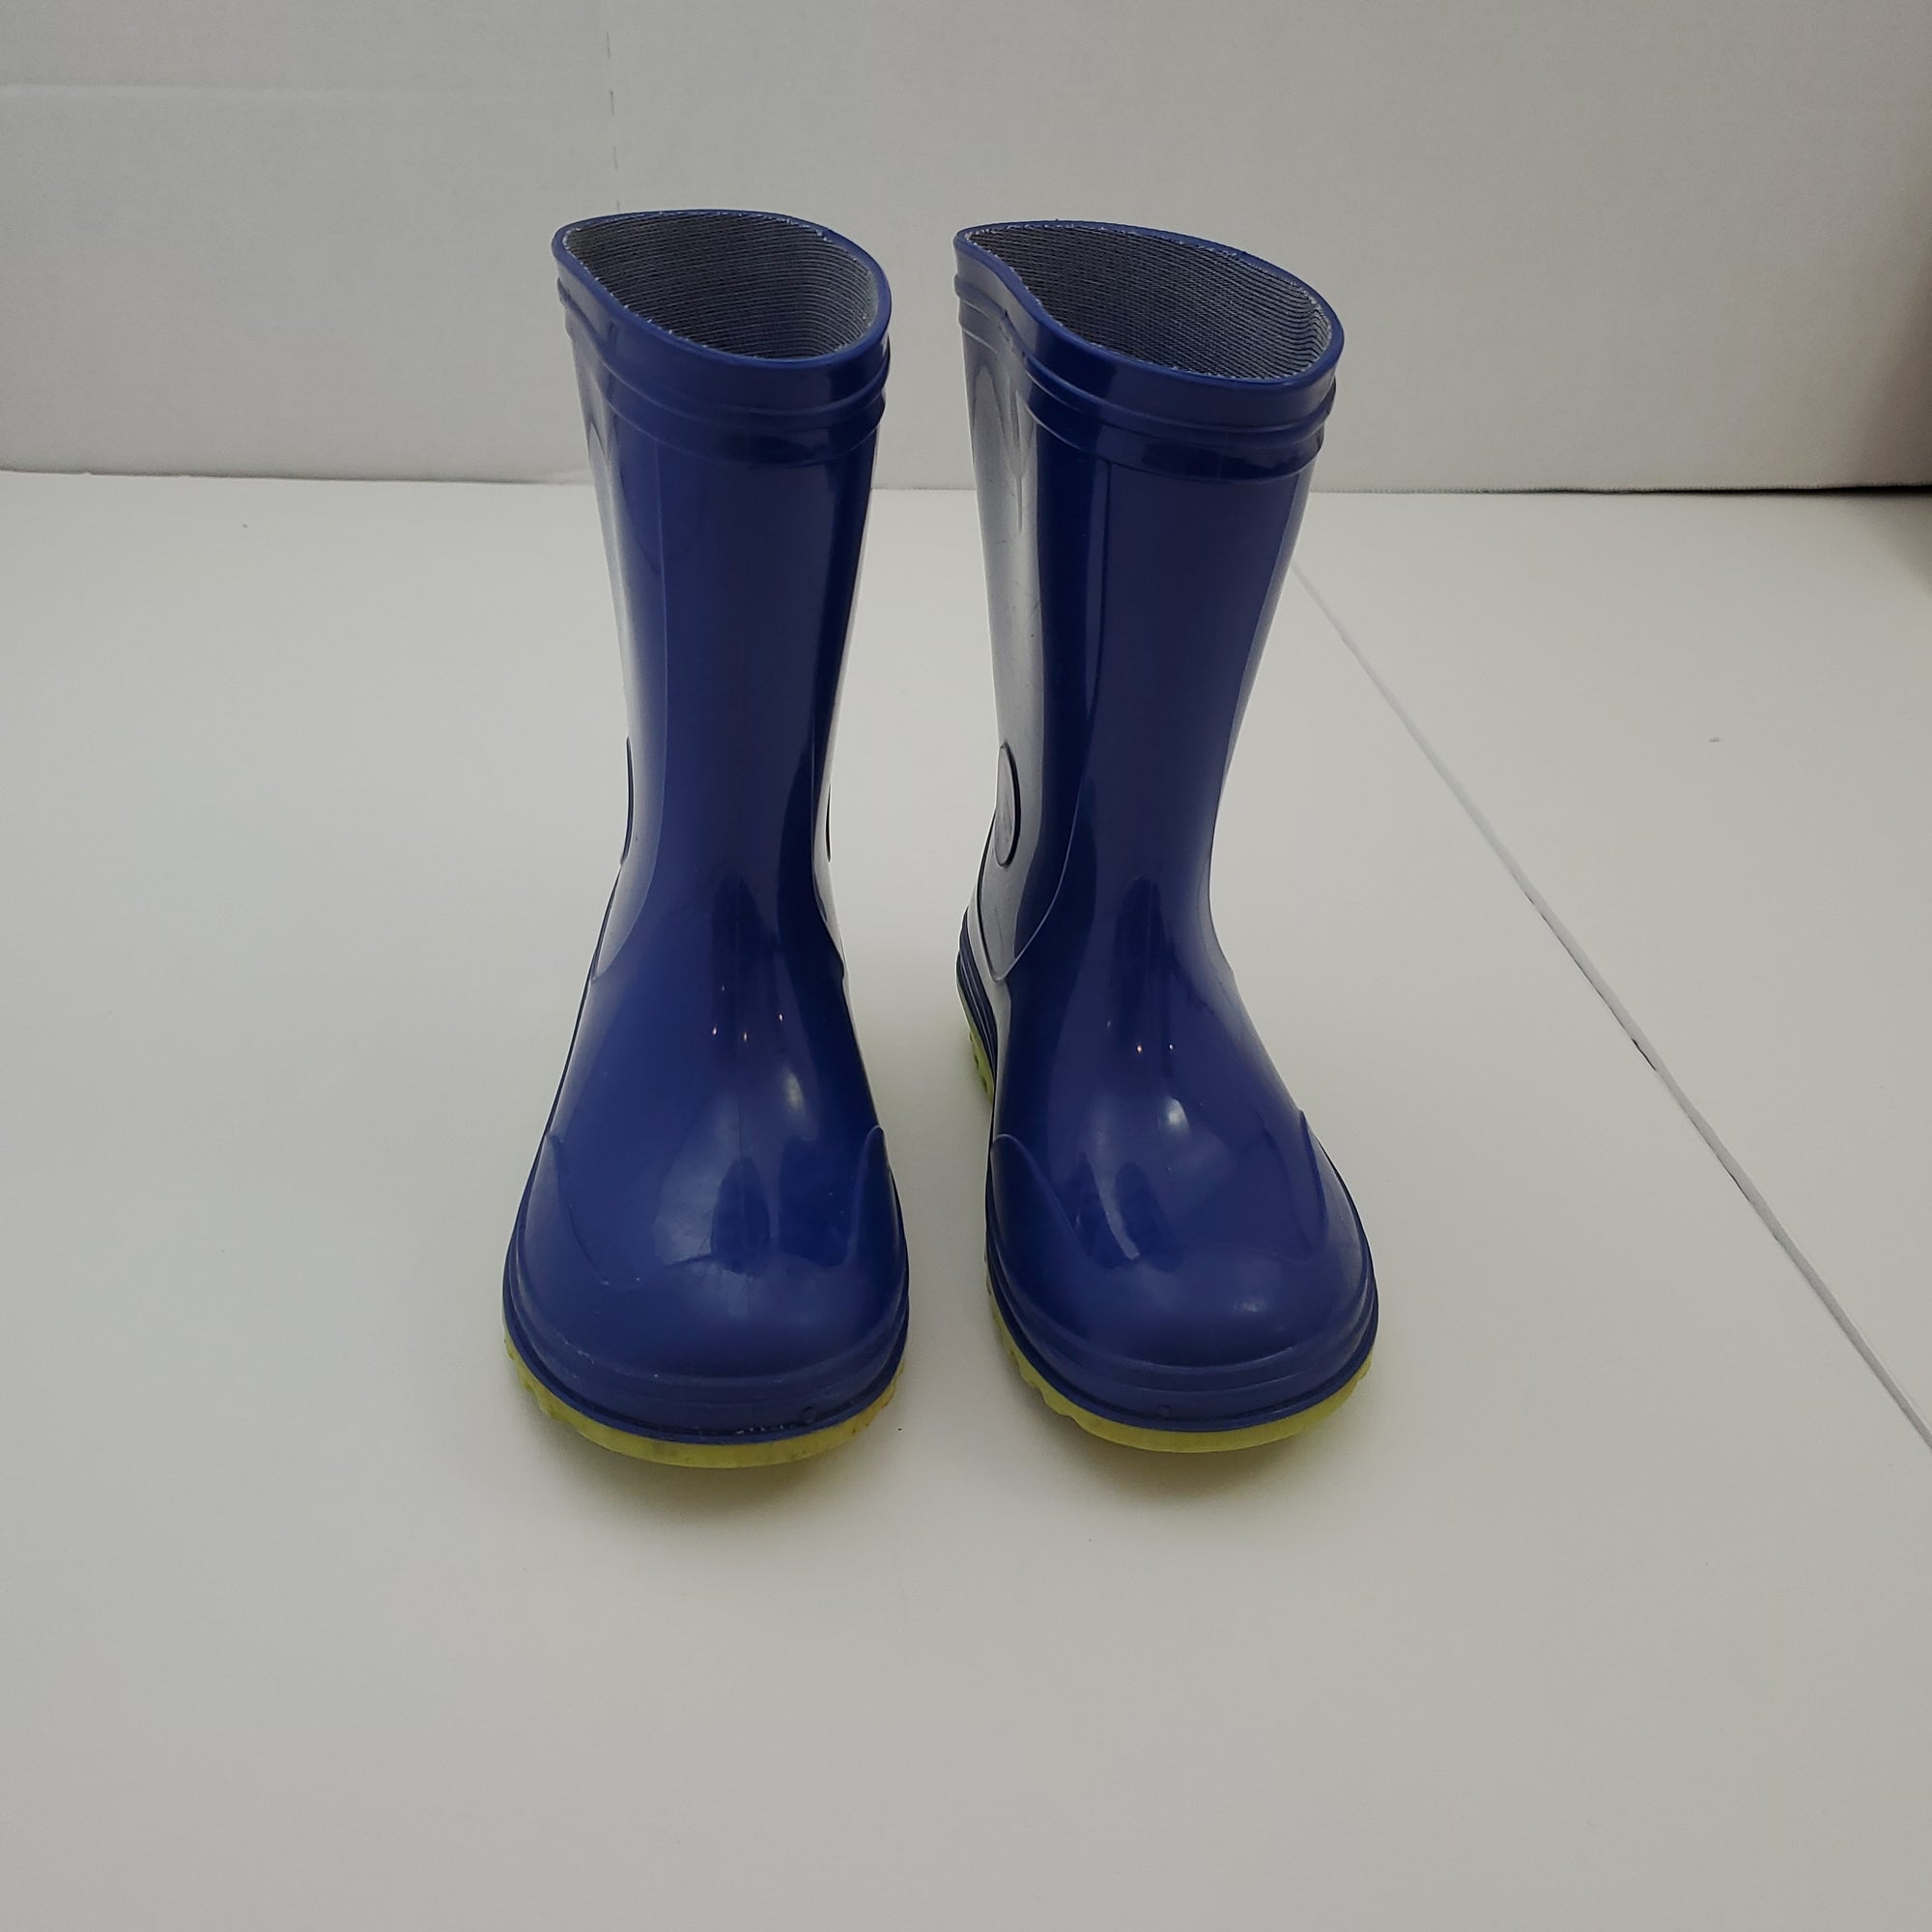 Resale C12 Navy Blue / Green Rainboots